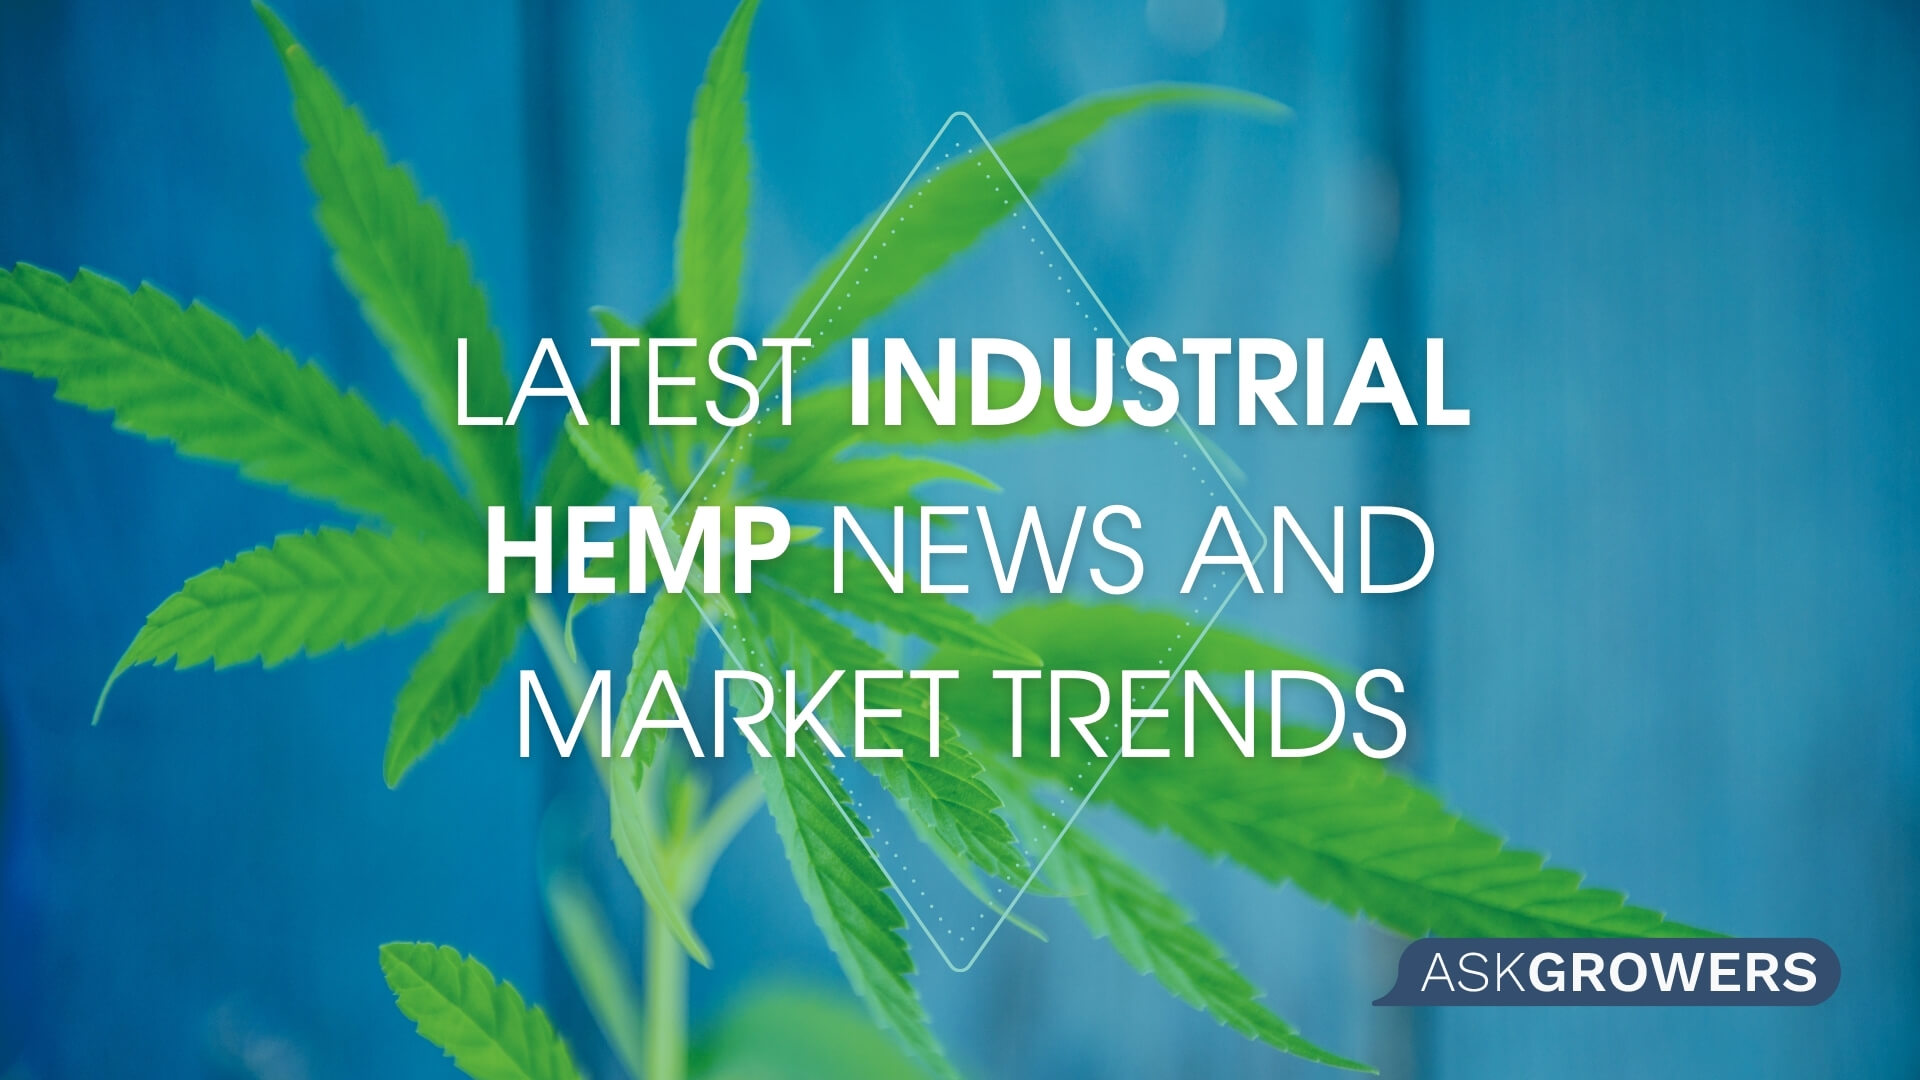 Latest Industrial Hemp News and Market Trends, AskGrowers